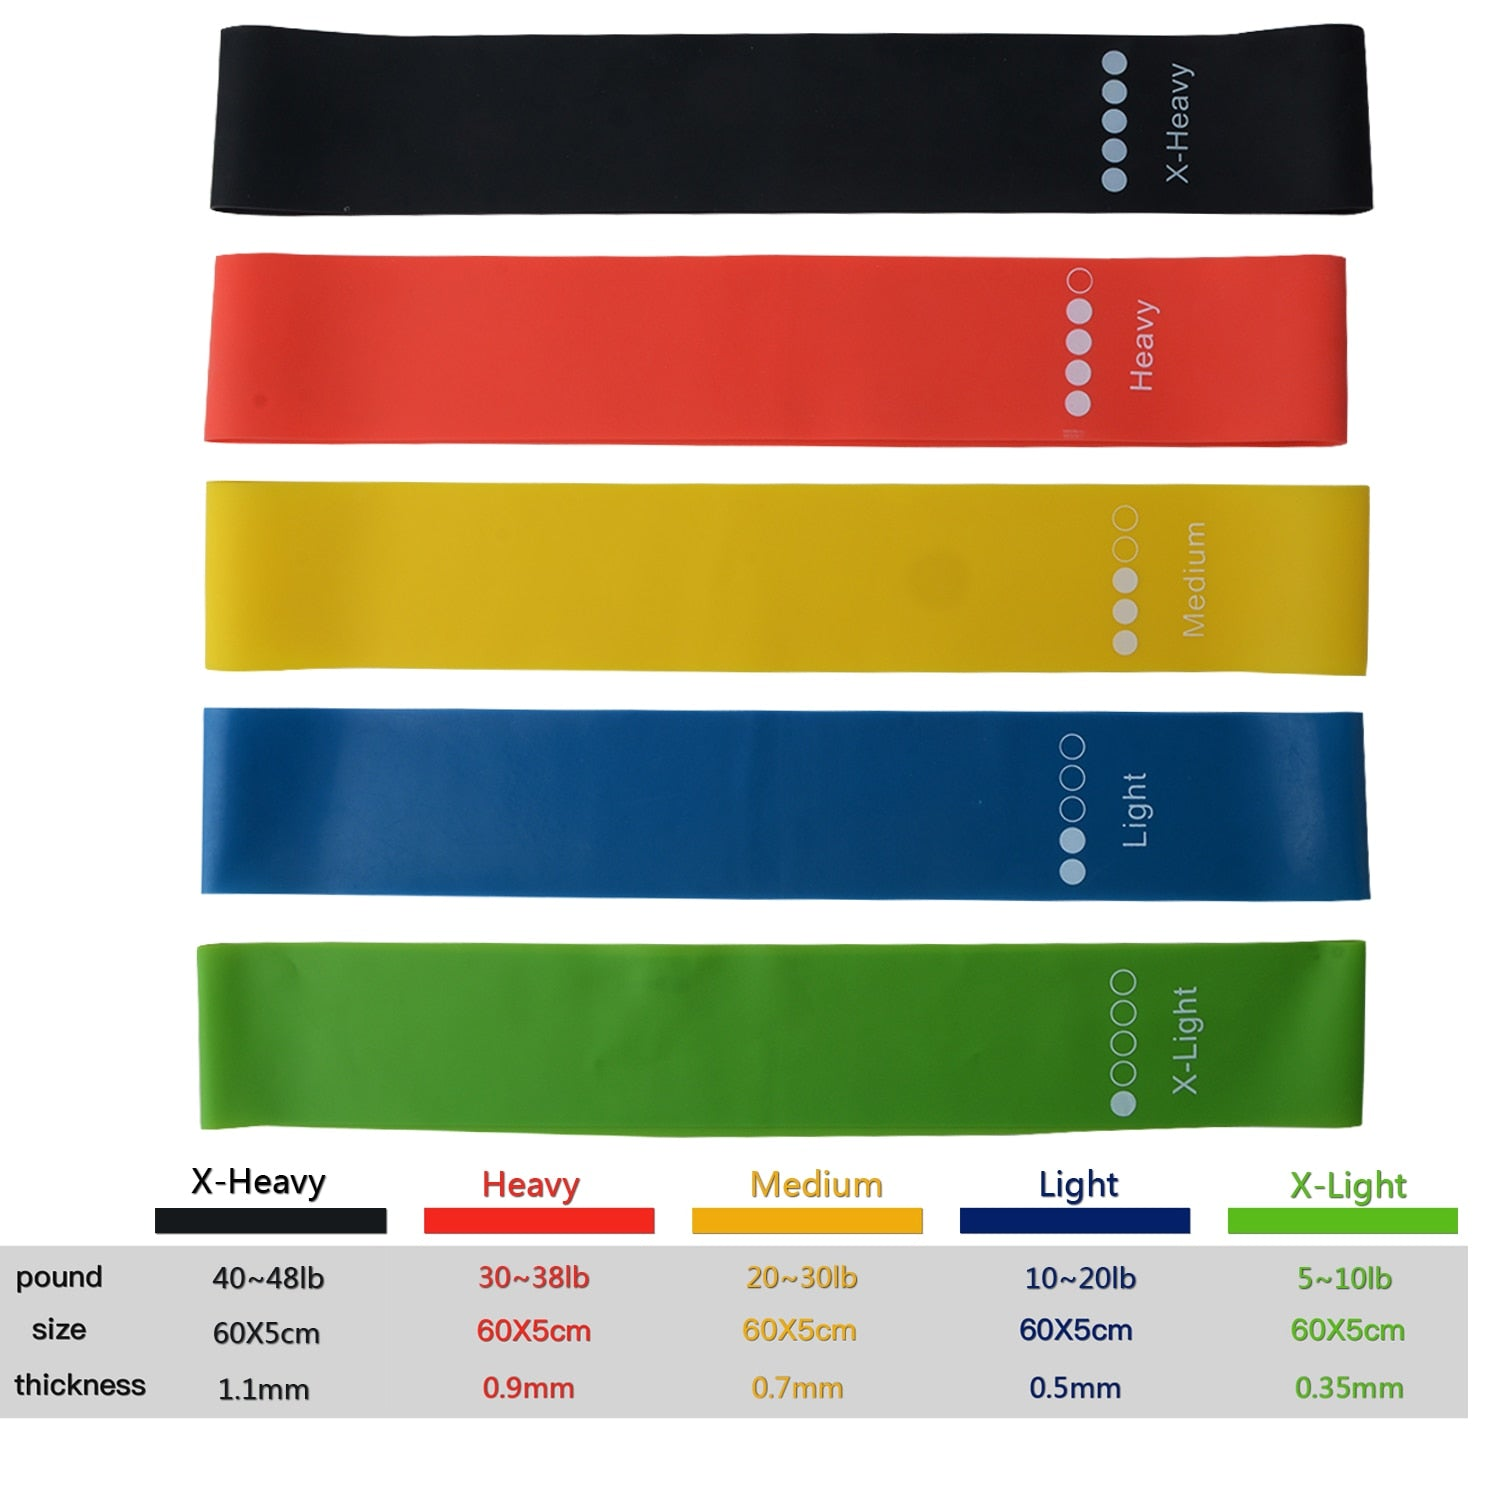 Multi Purpose Yoga Resistant Training Bands - Everything Crunk